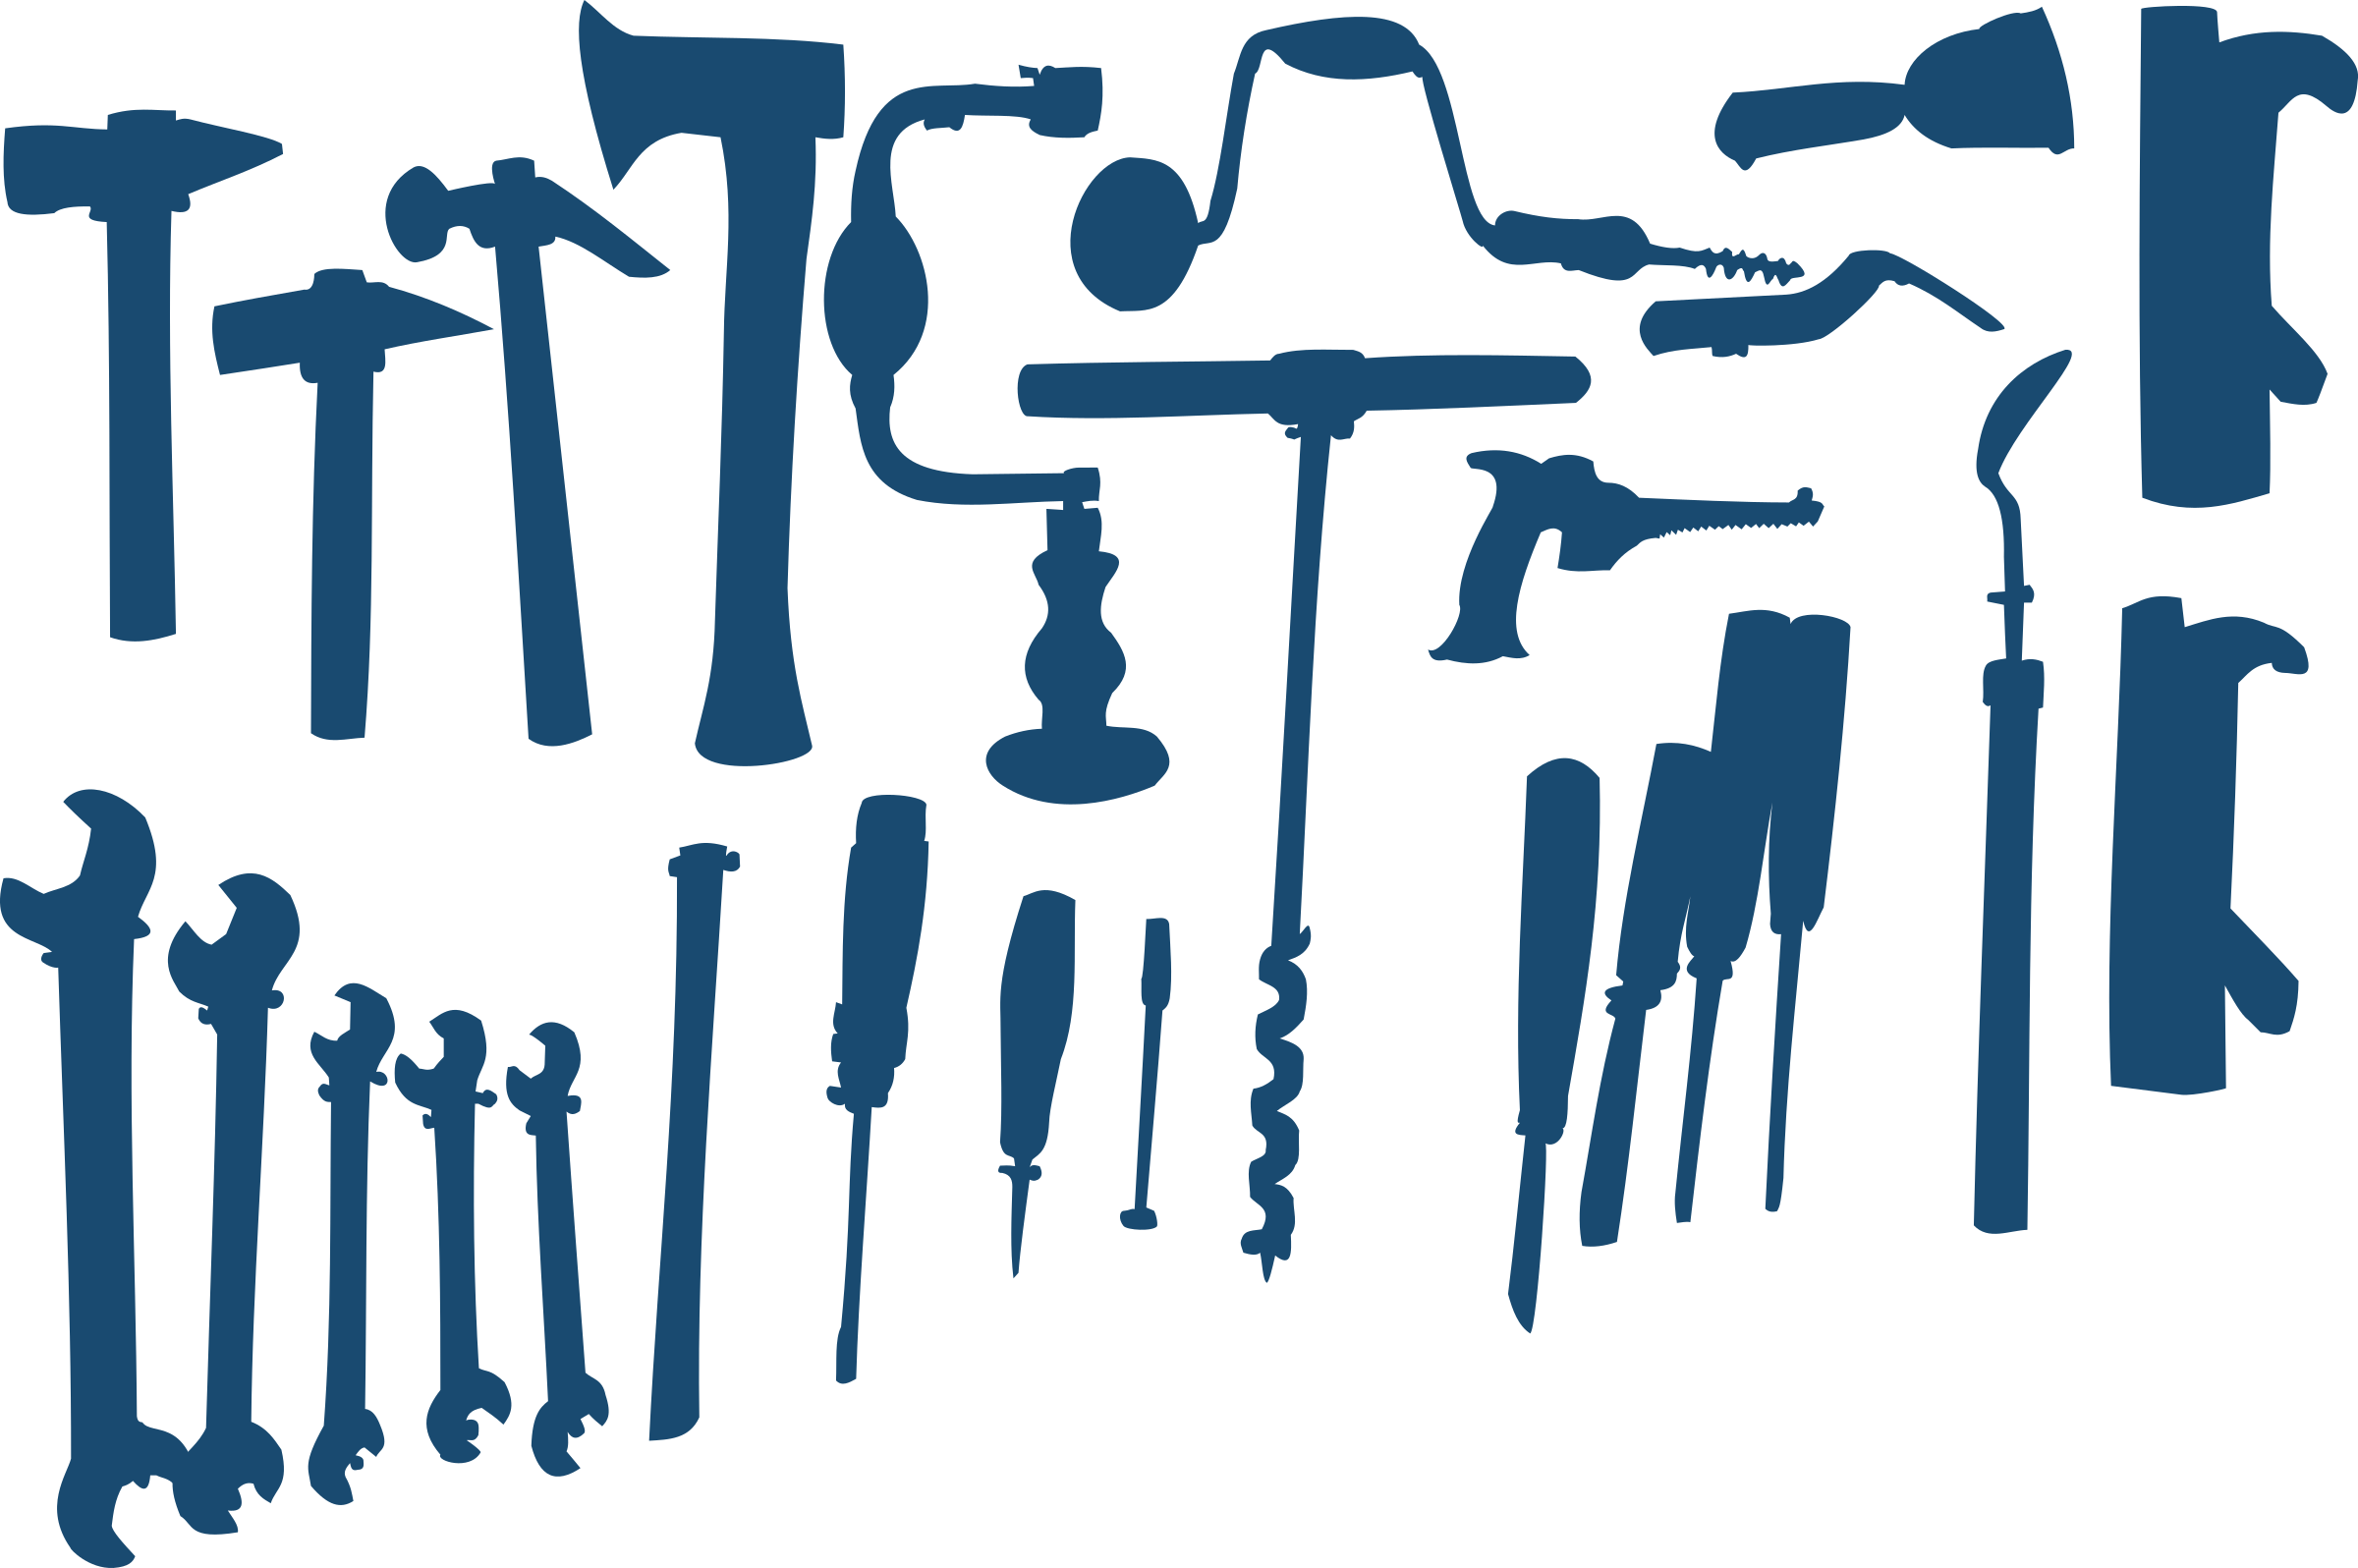 Tools silhouette at getdrawings. Clipart hammer builder tool